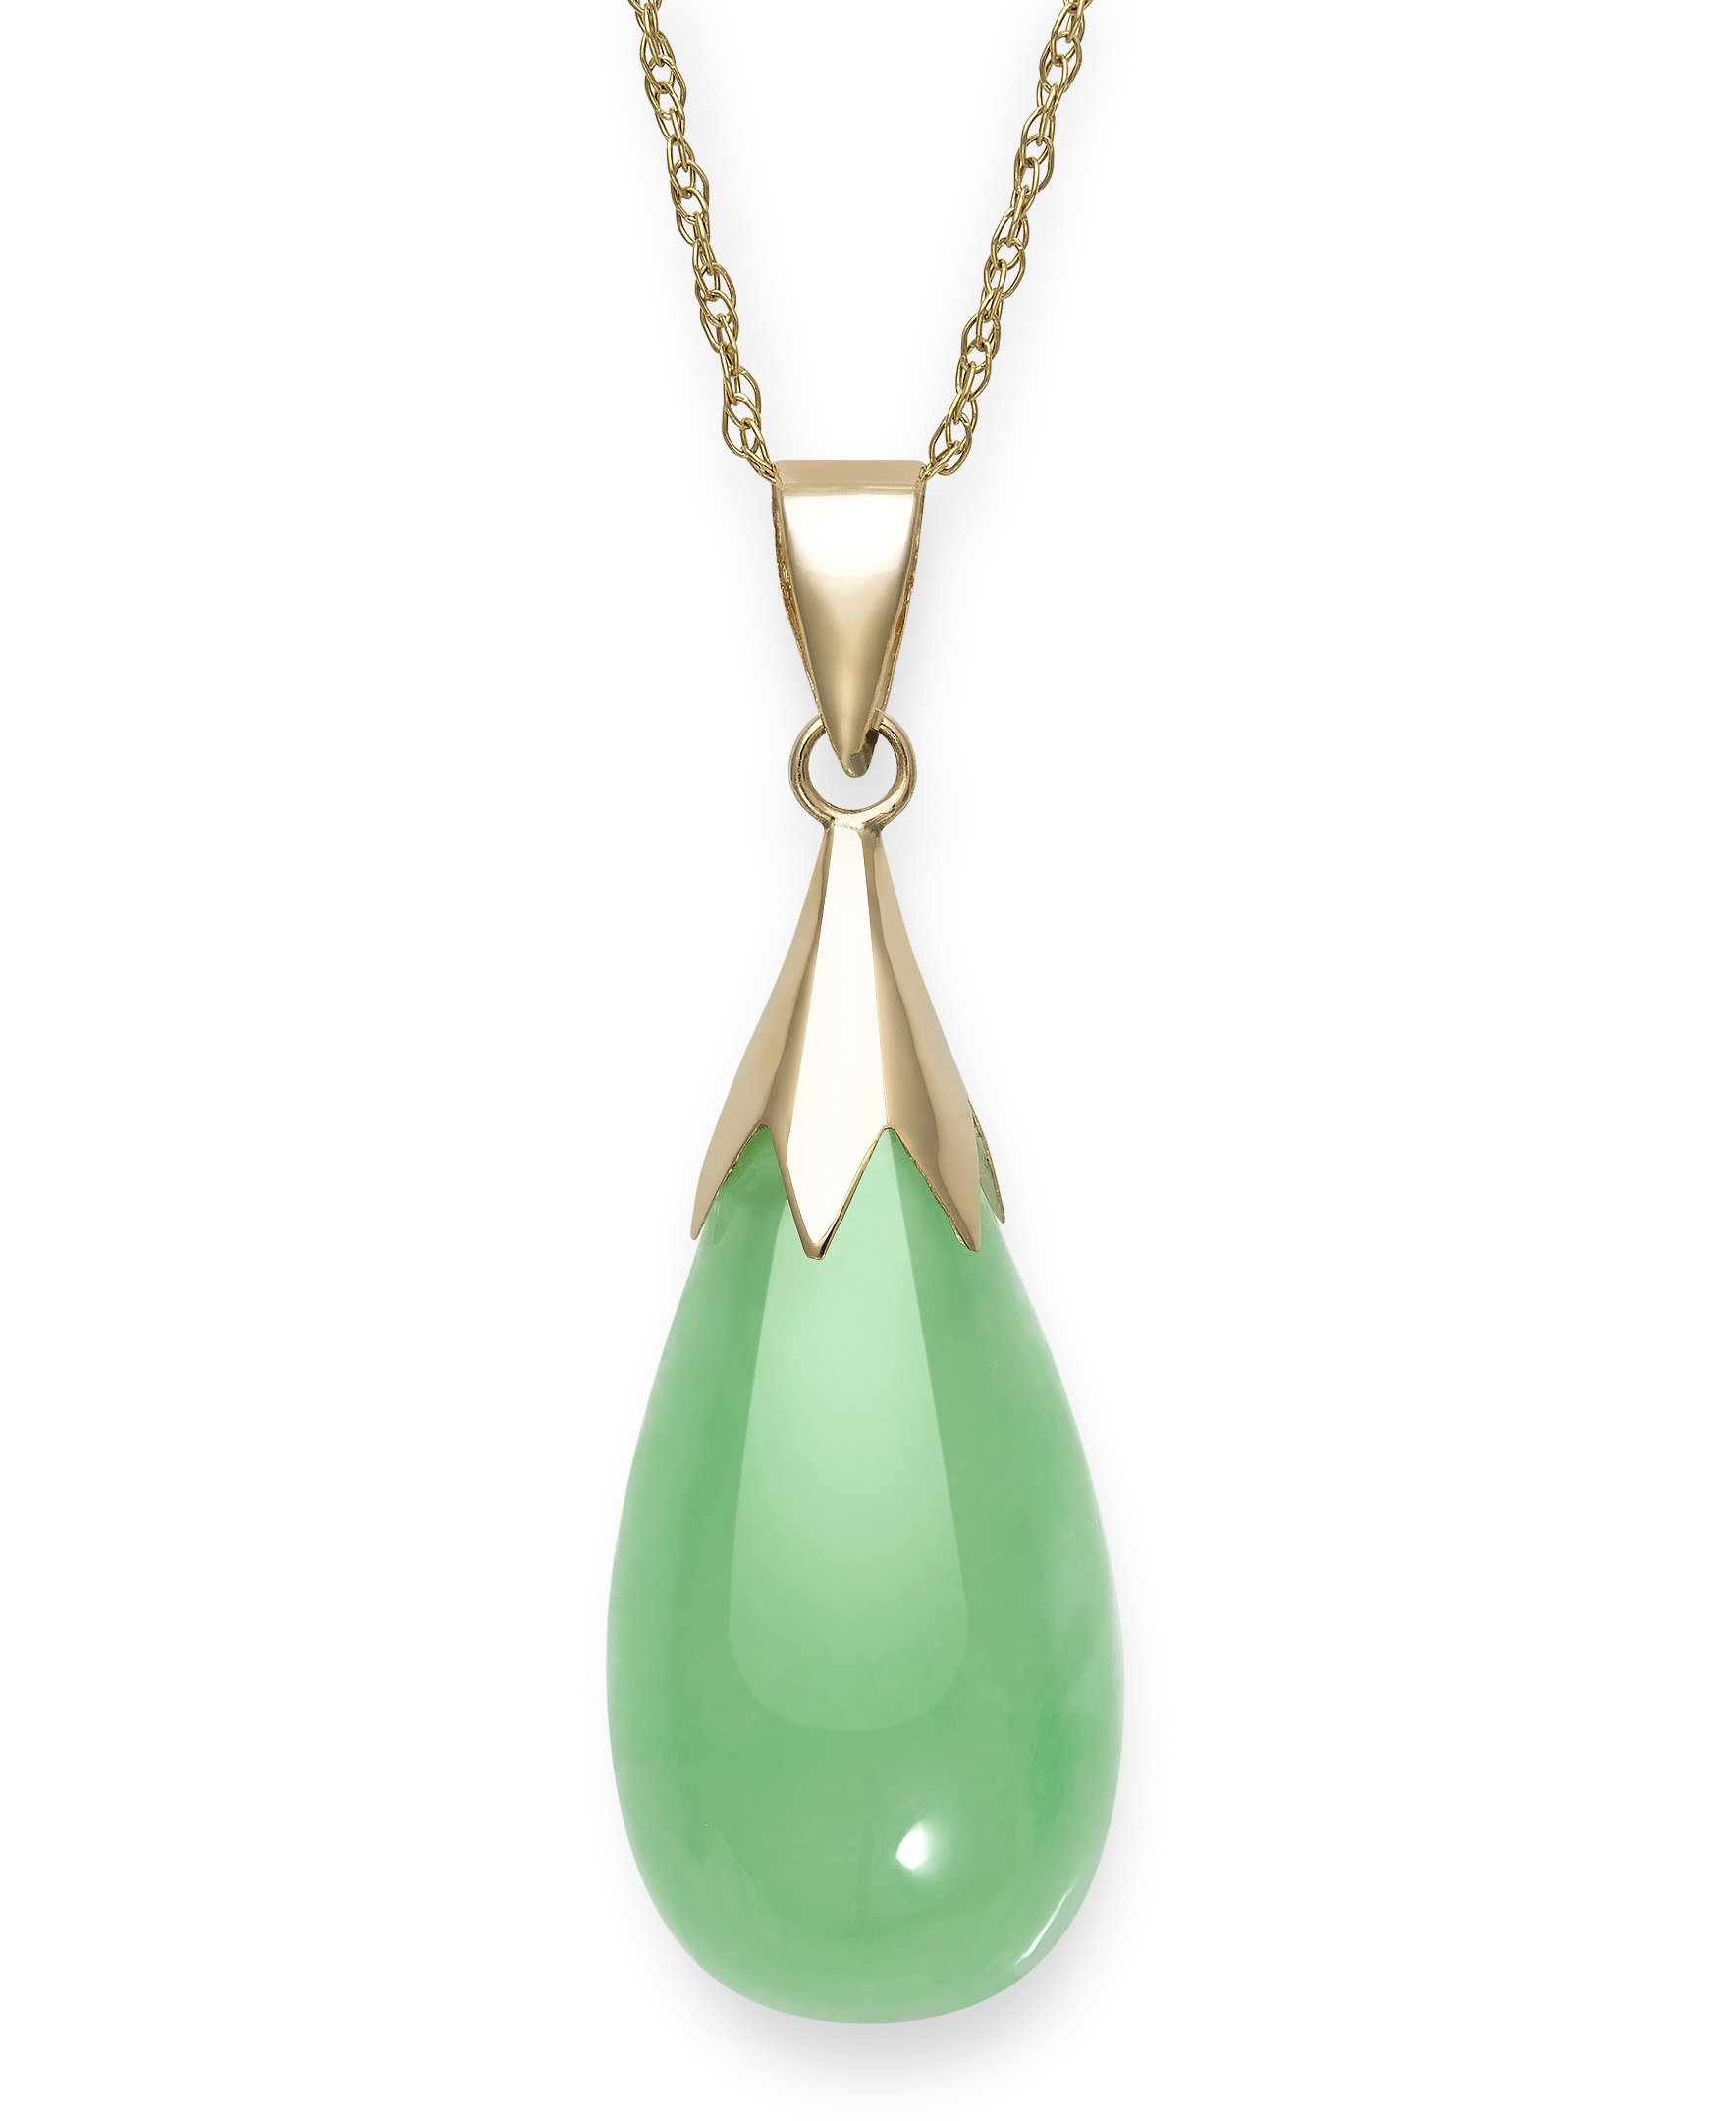 10k Yellow Gold Unisex Natural Green Jade Teardrop Pendant Chain Necklace,18''